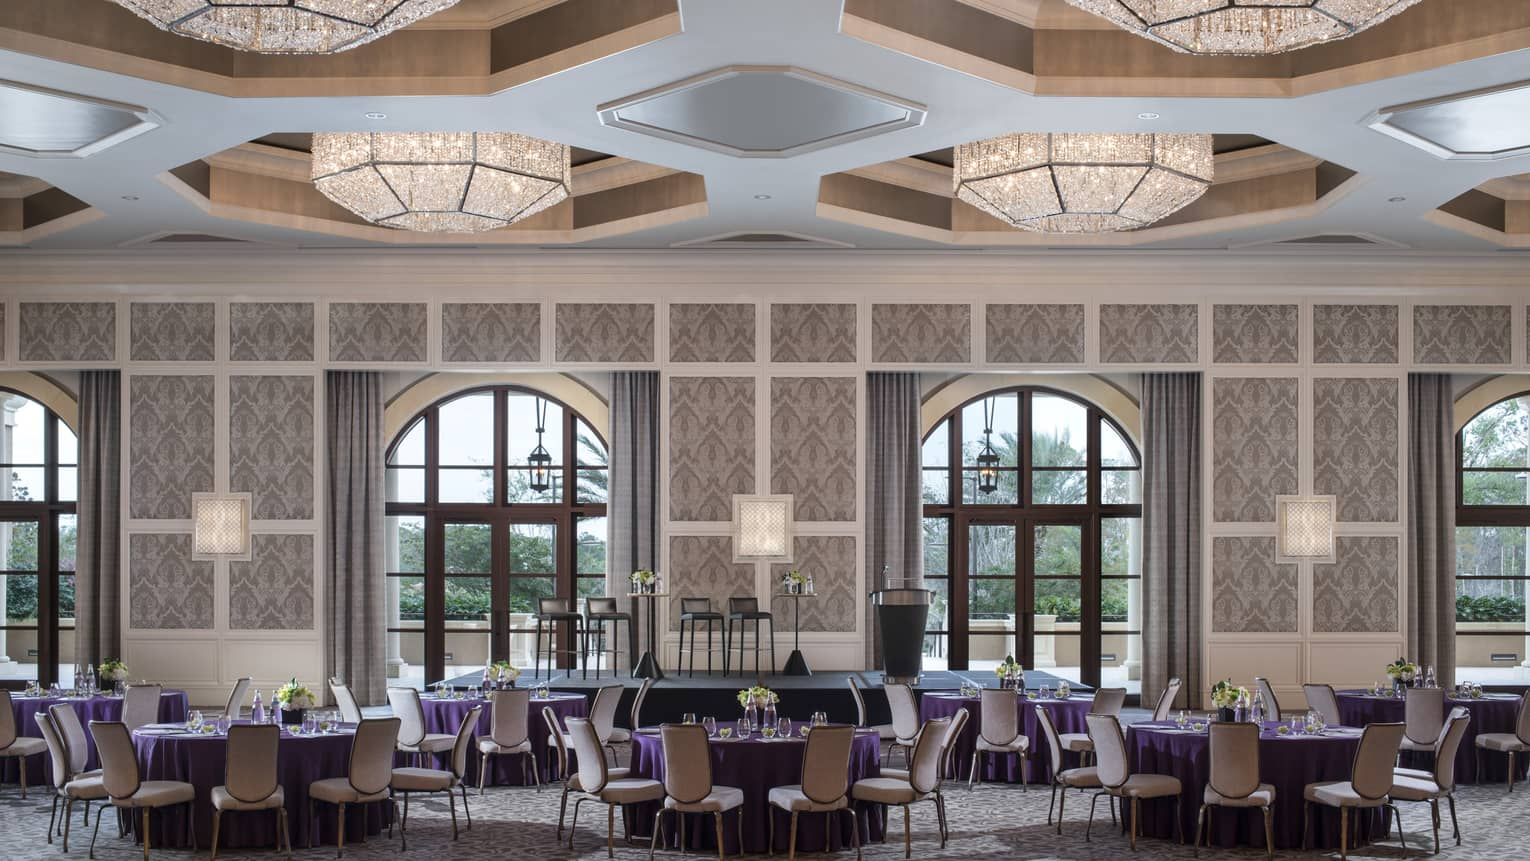 A ballroom at four seasons resort orlando at walt disney world is ready for guests with circular tables covered in purple table cloths